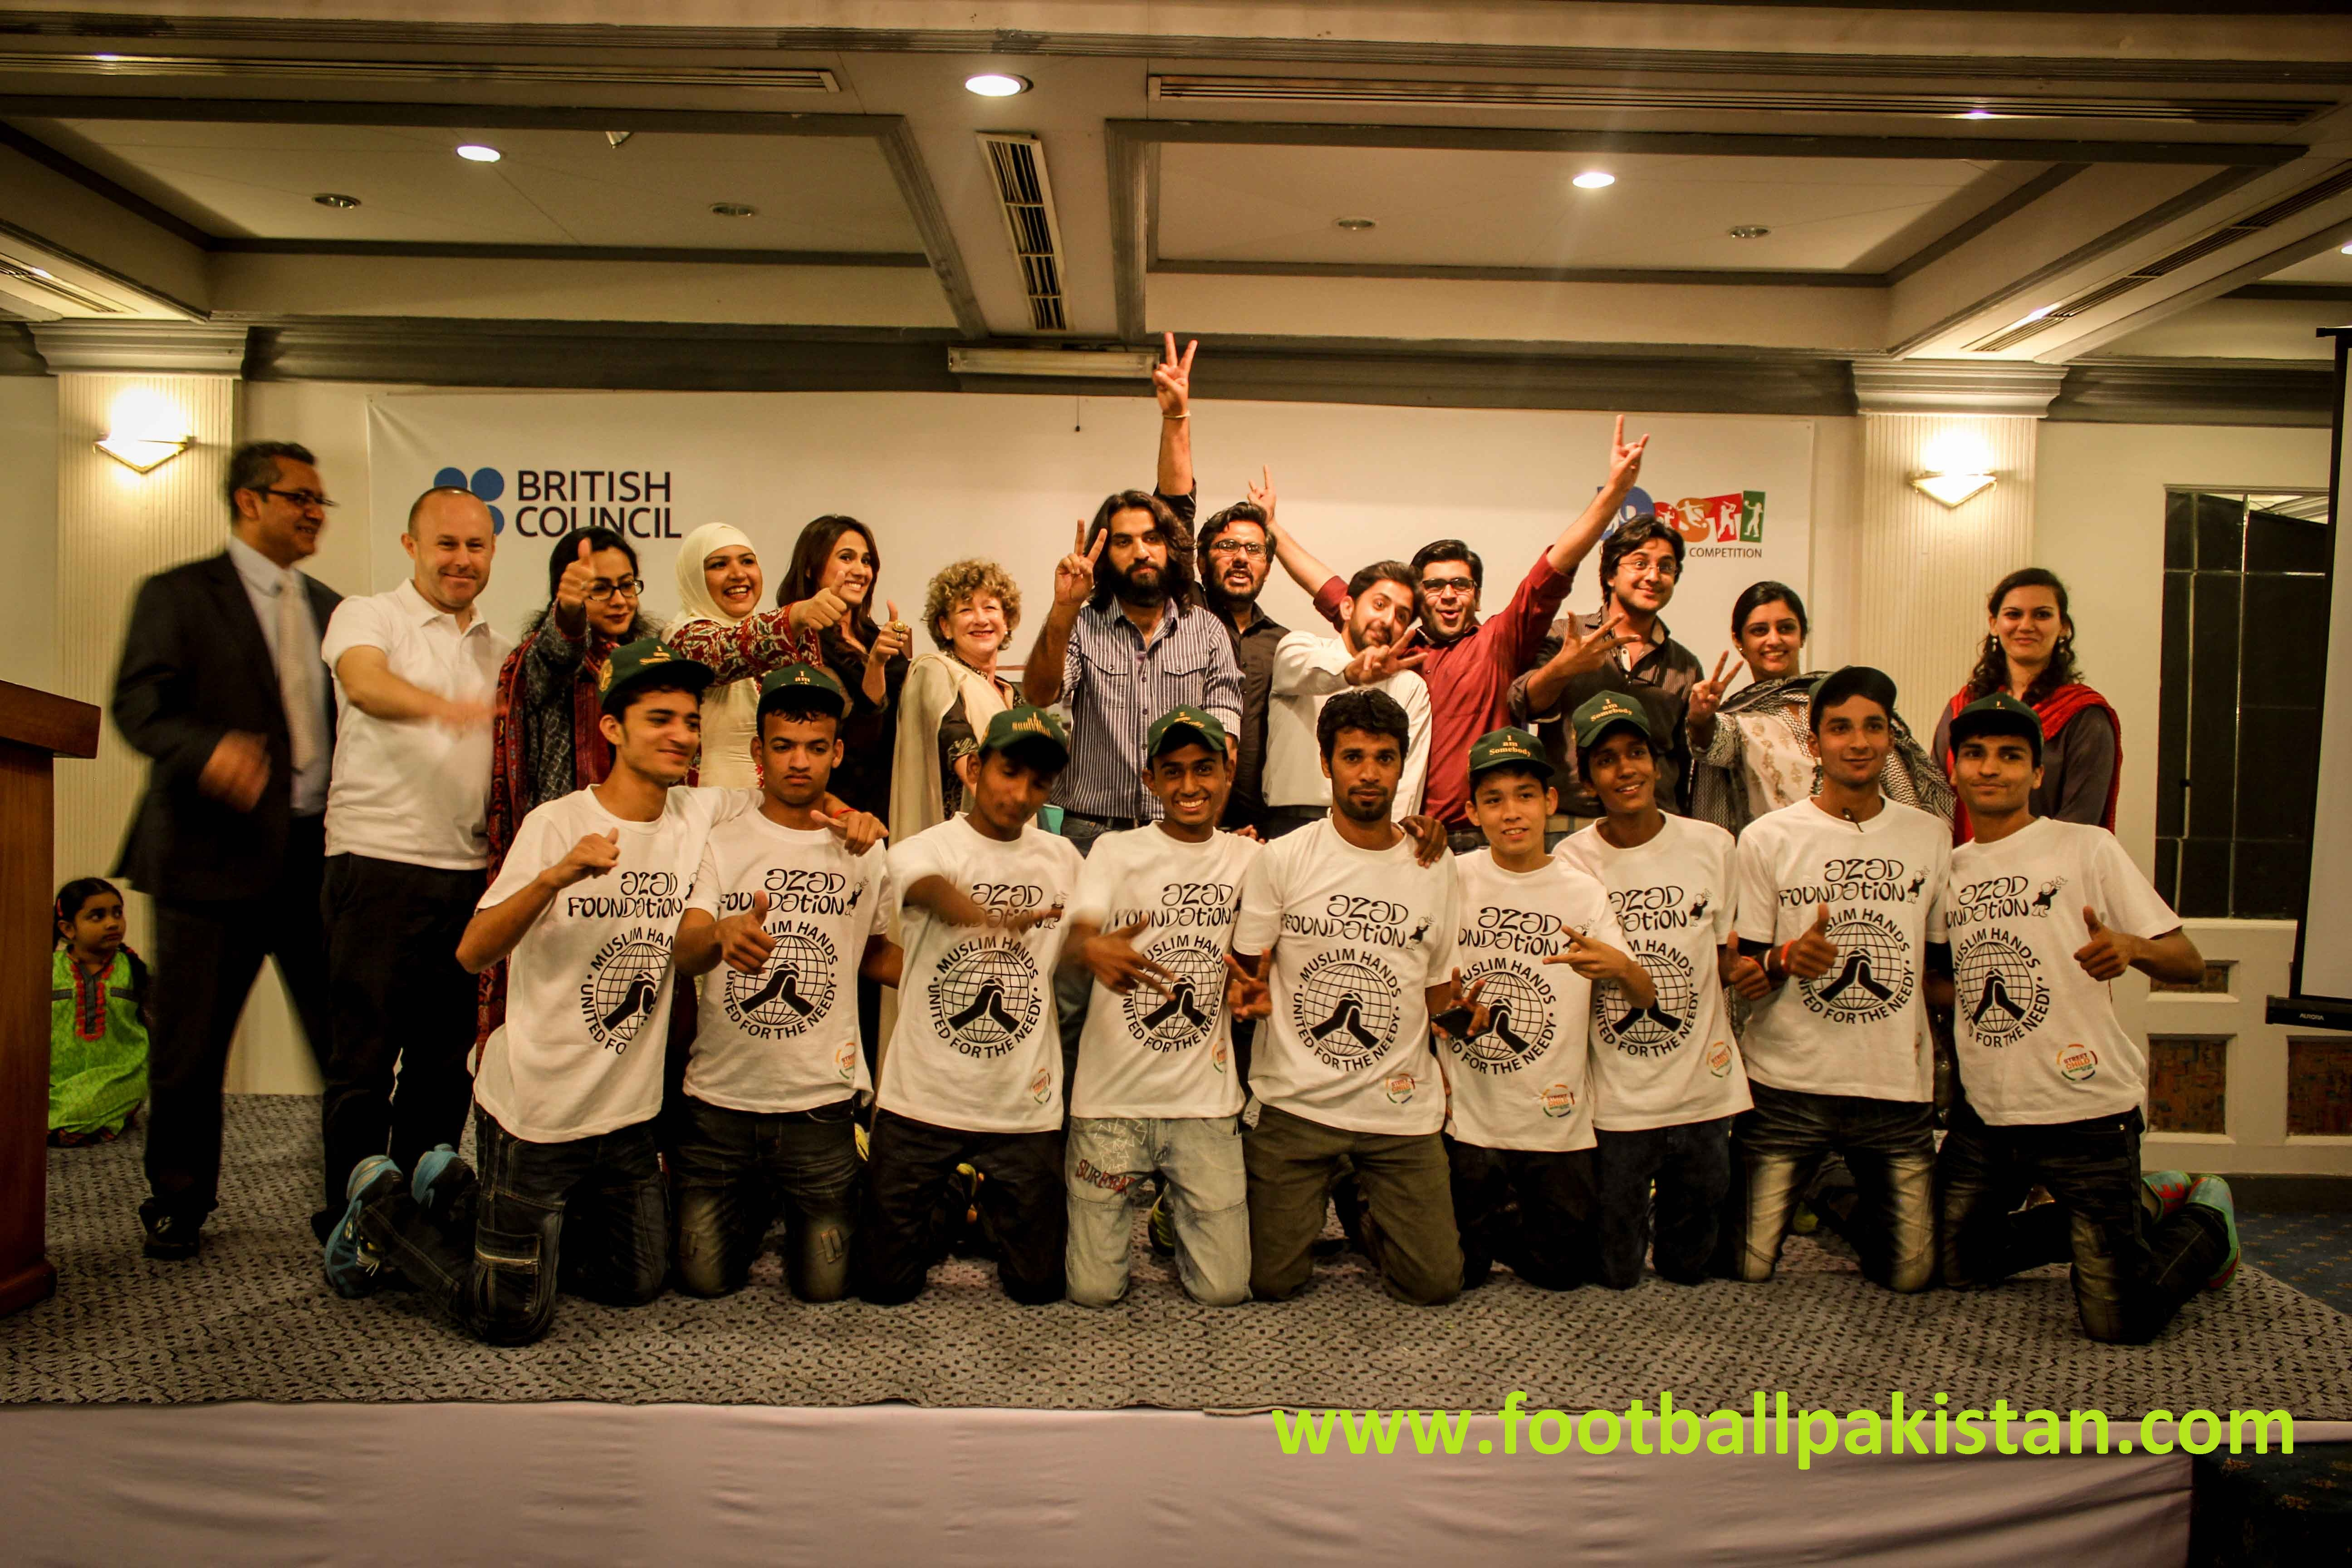 British Council hosts a reception for the Pakistan Street Child World Cup Team